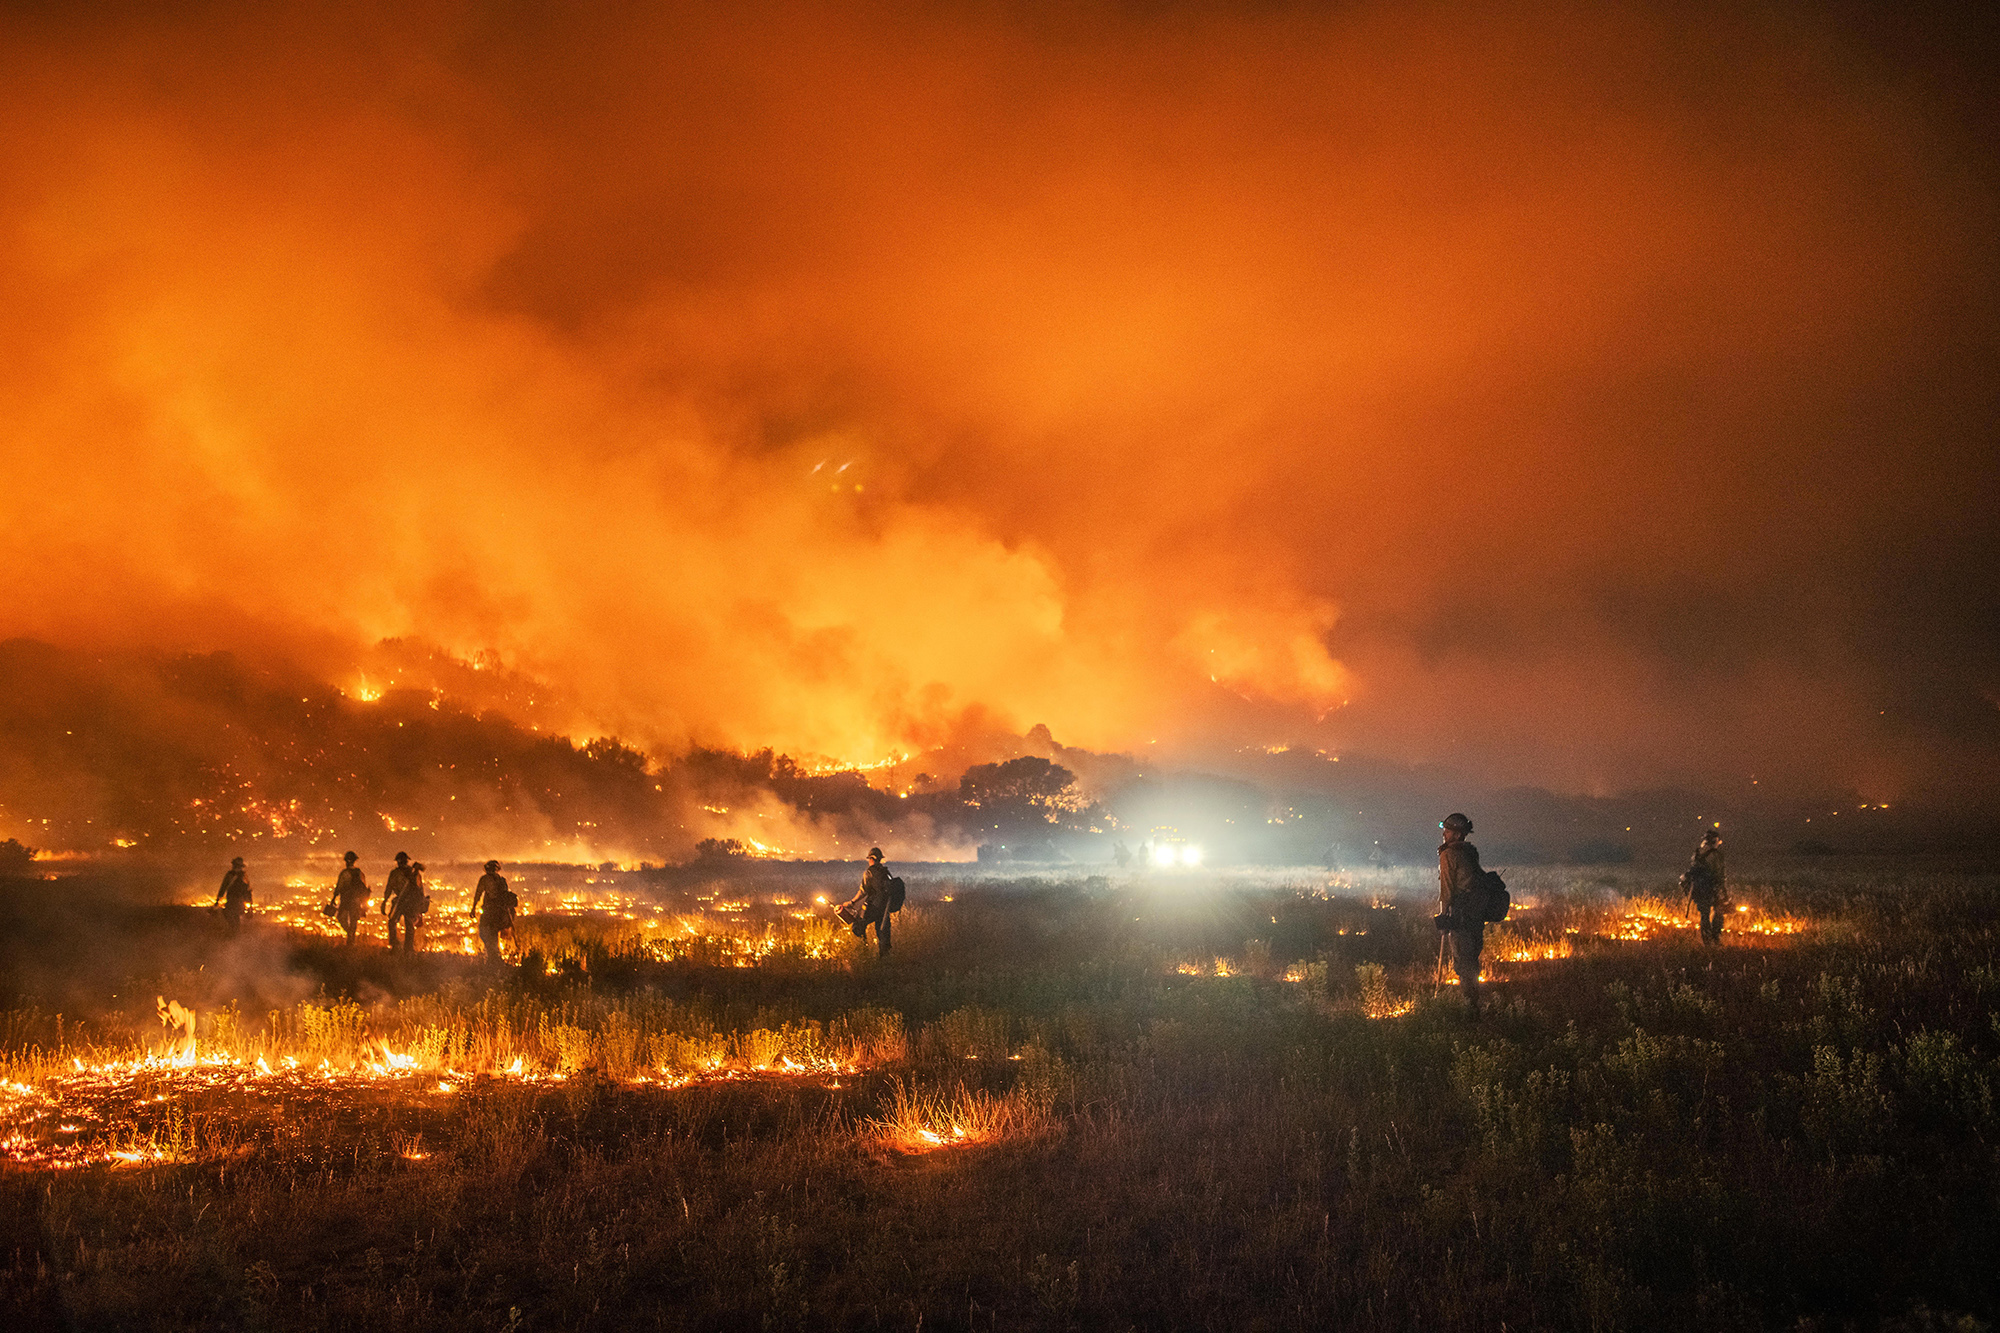 Firefighters at work on the Pine Gulch fire during the night shift.